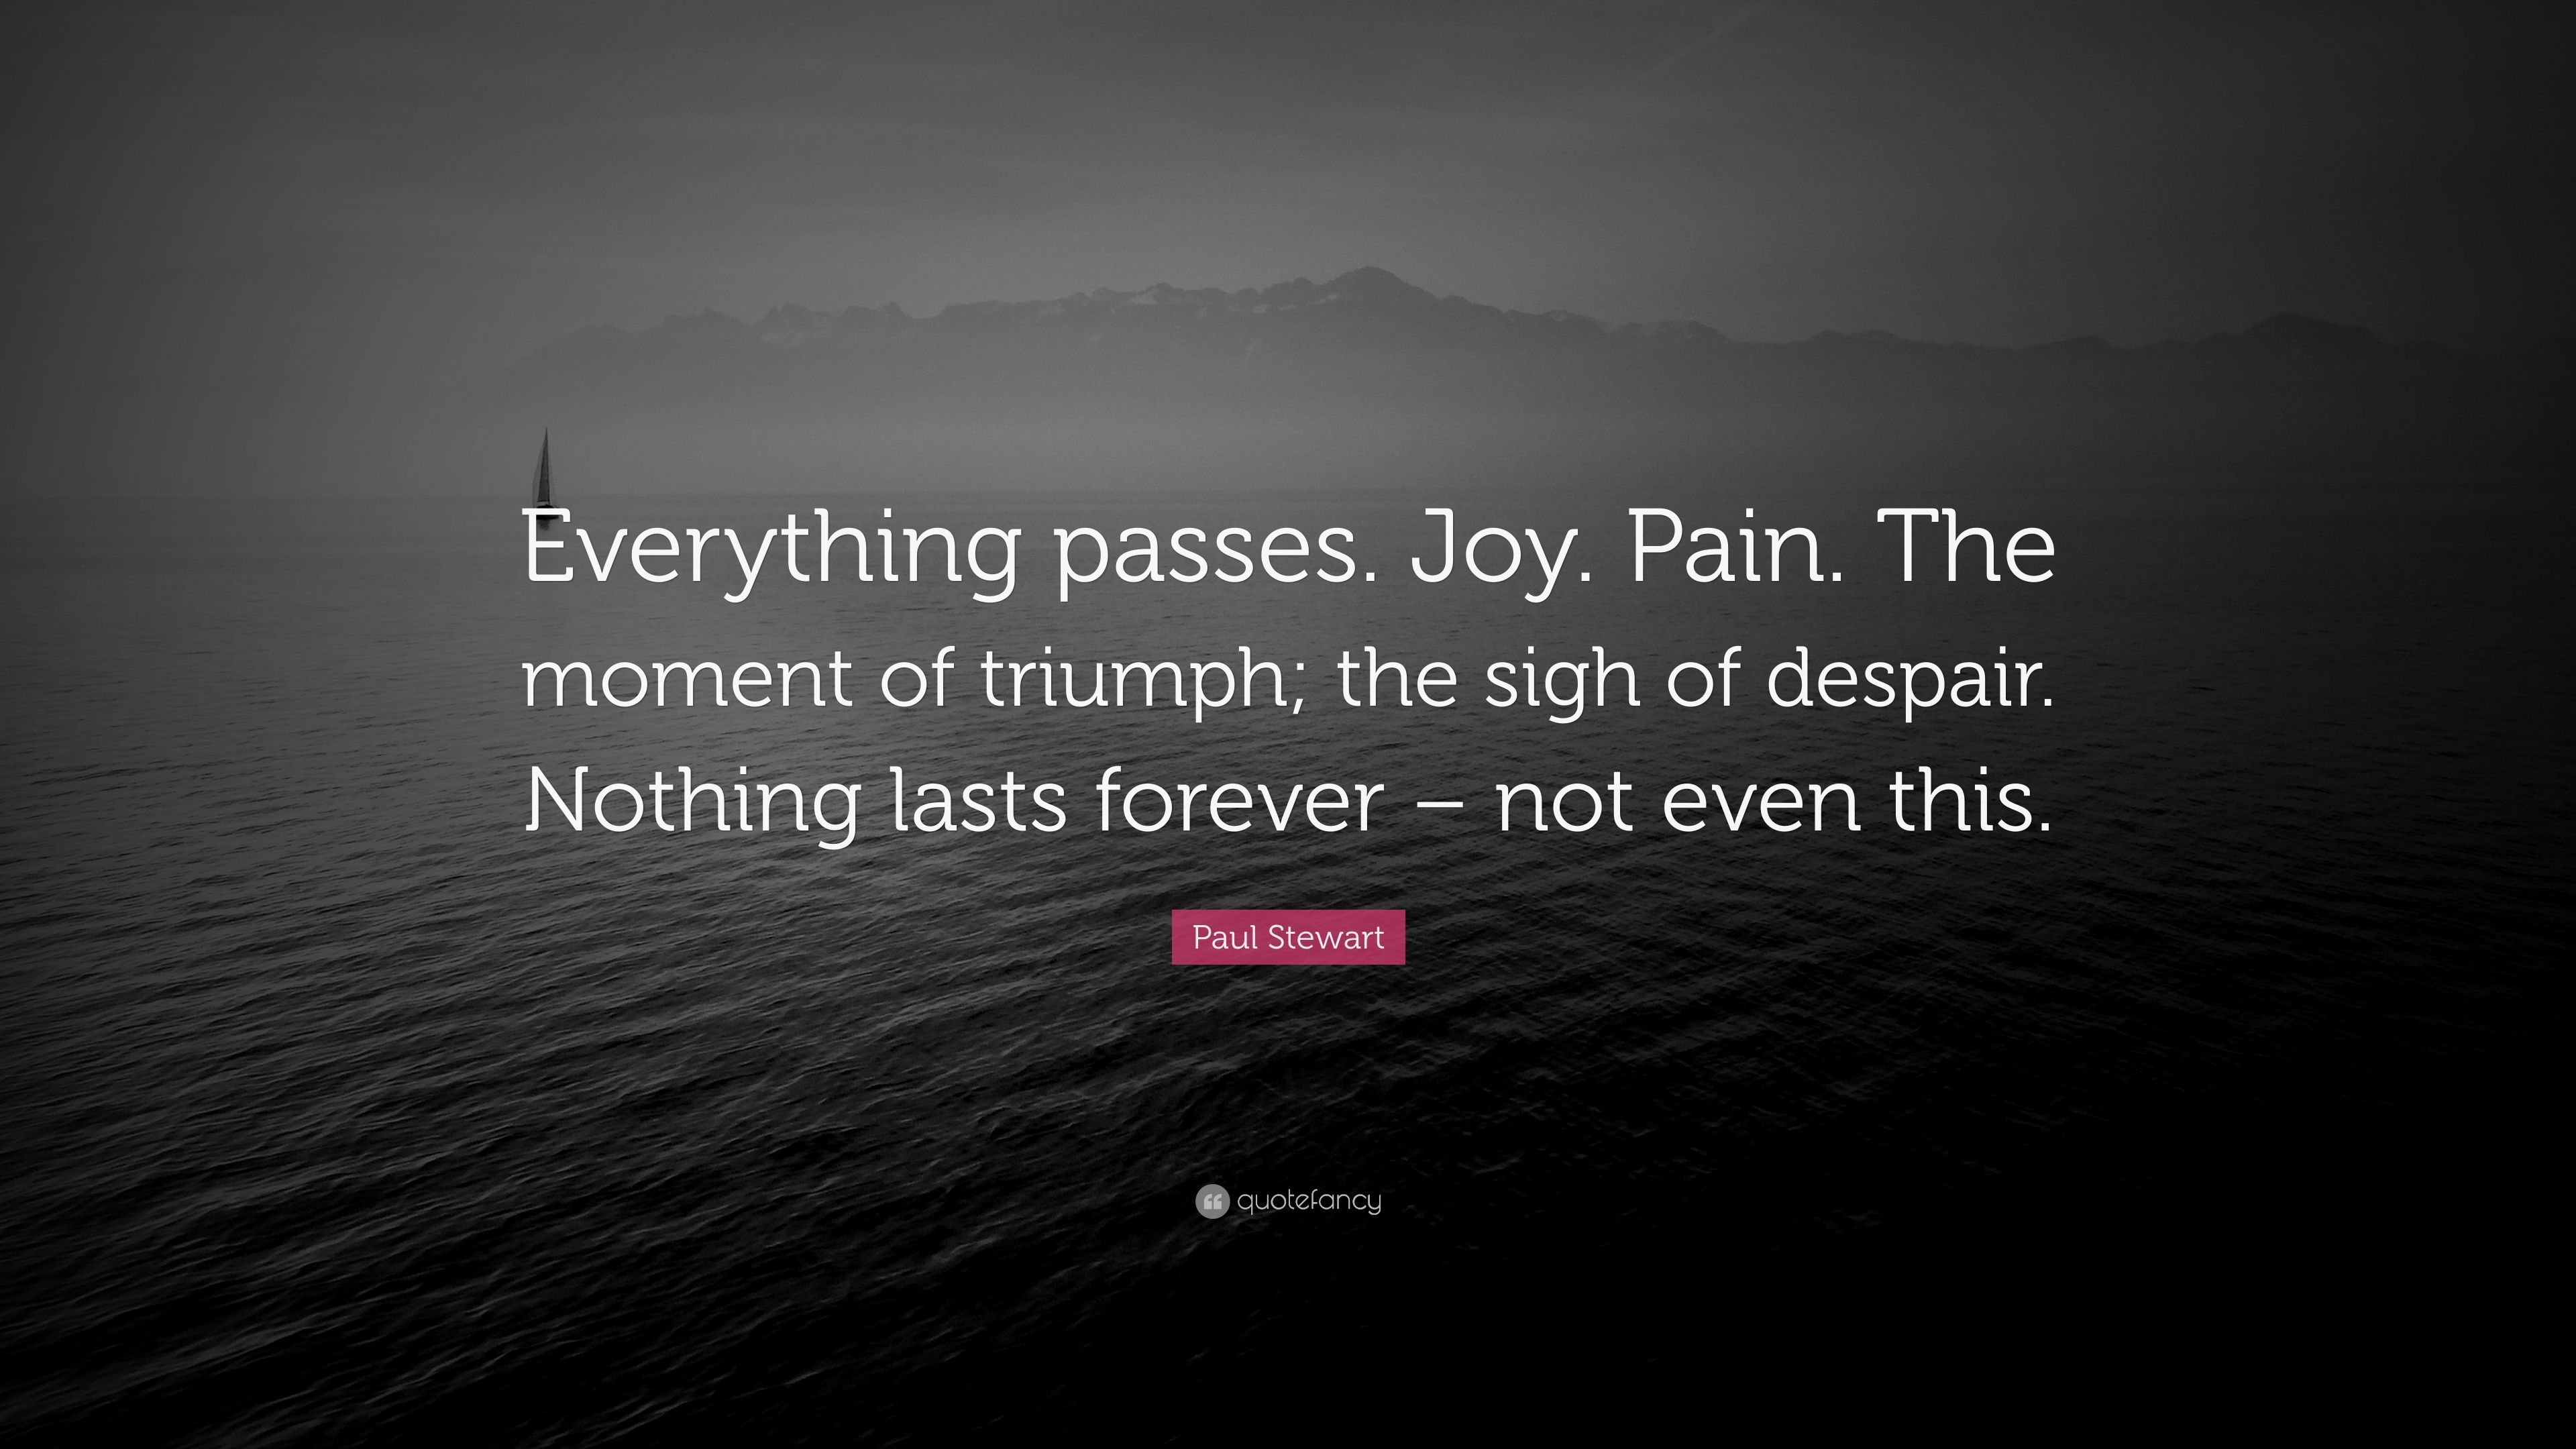 Paul Stewart Quote Everything Passes Joy Pain The Moment Of